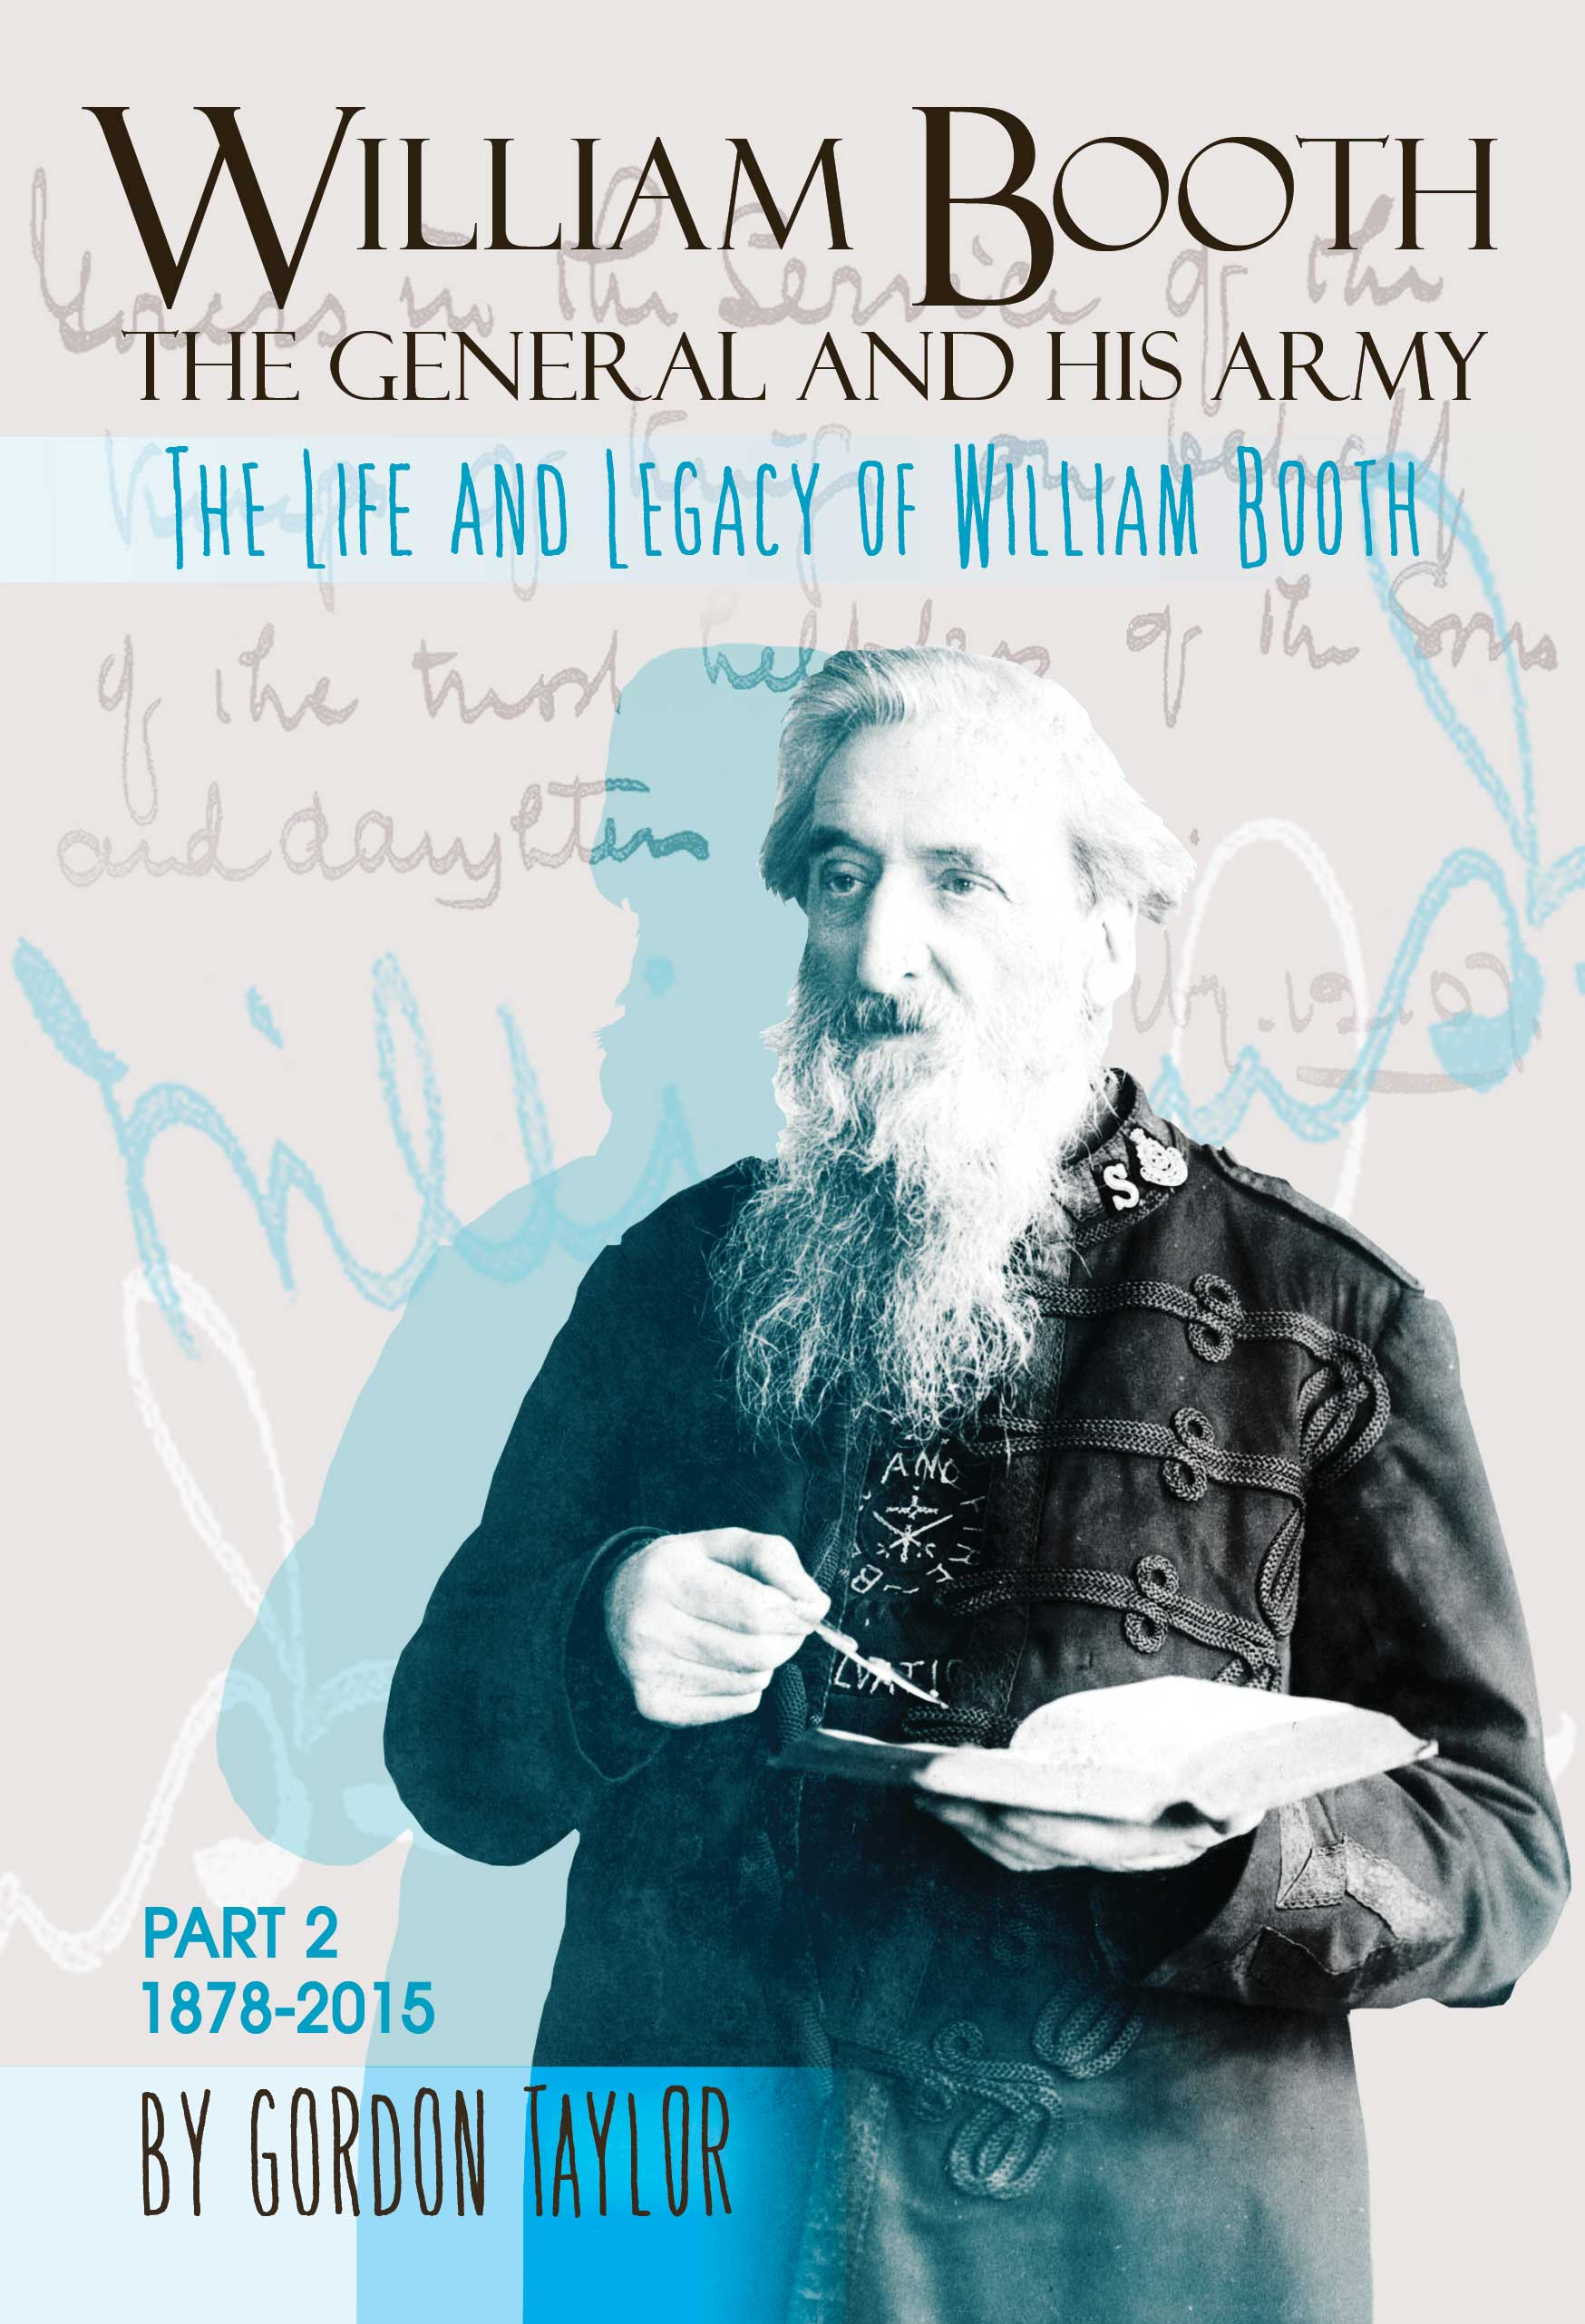 William Booth - The General and his Army Part 2